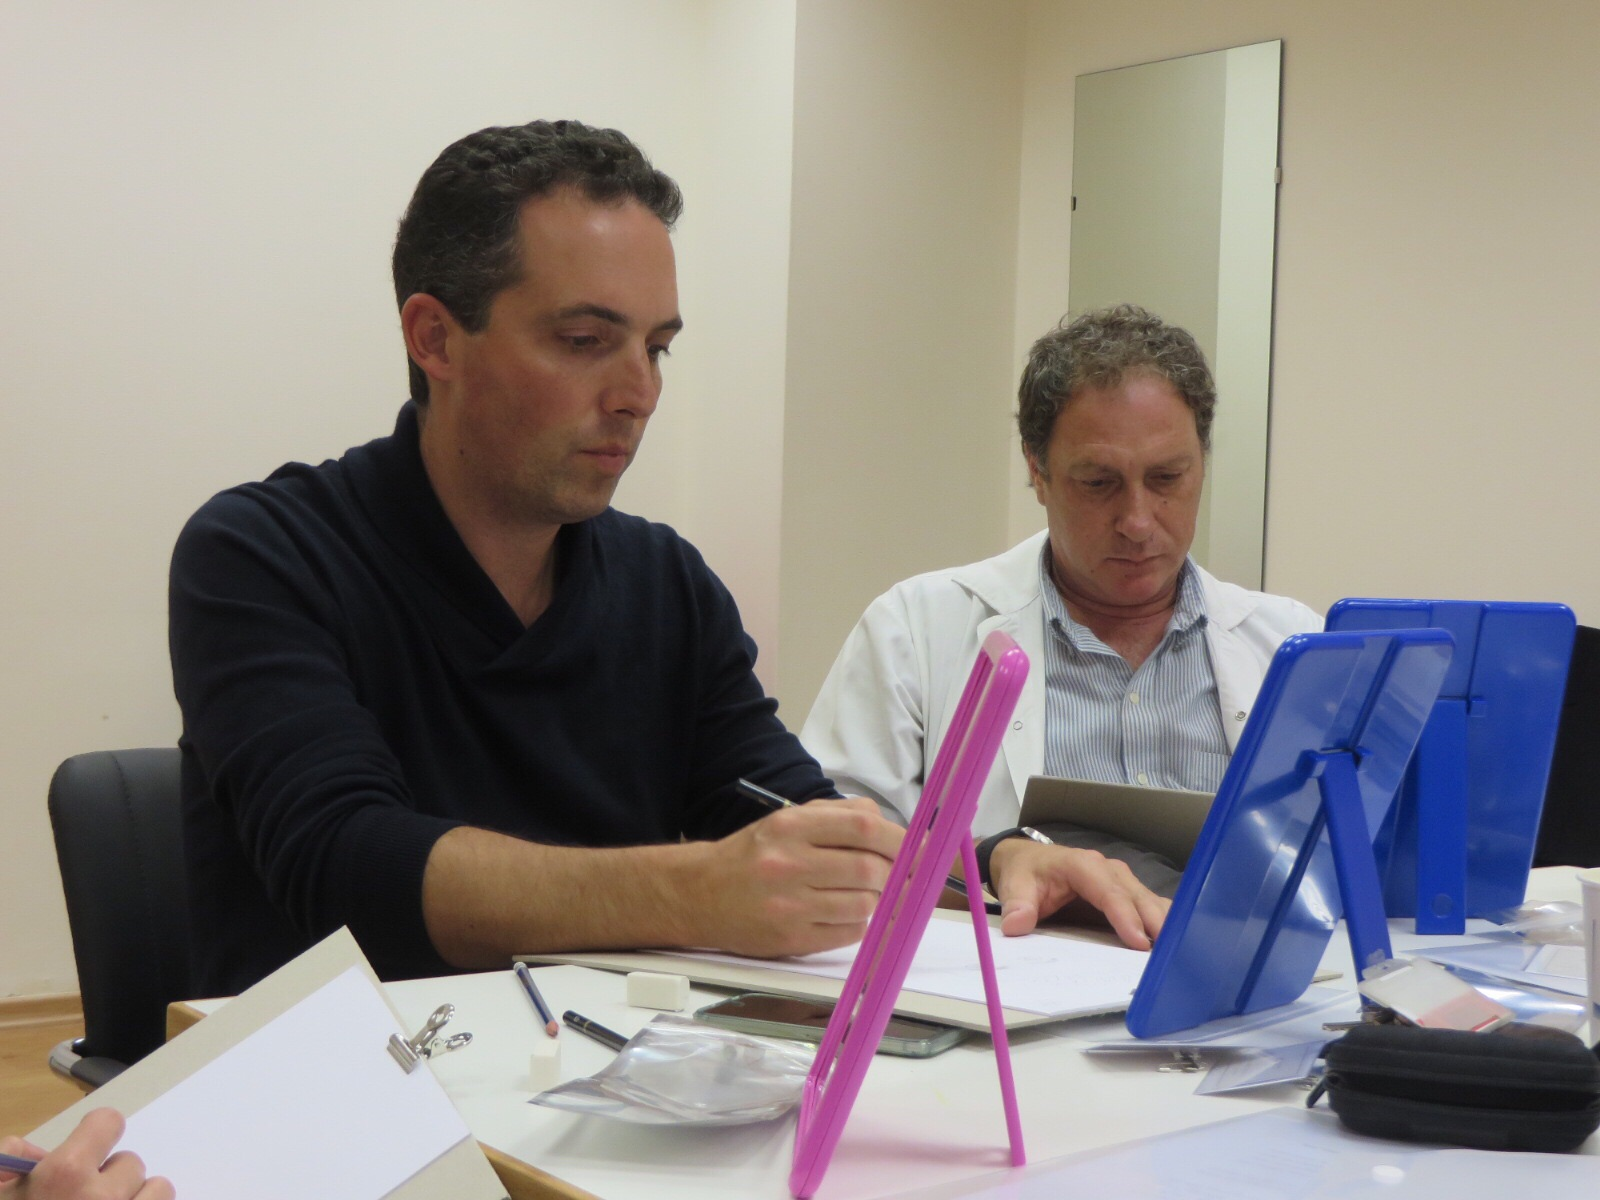 SZ plastic surgeons sketching during the course